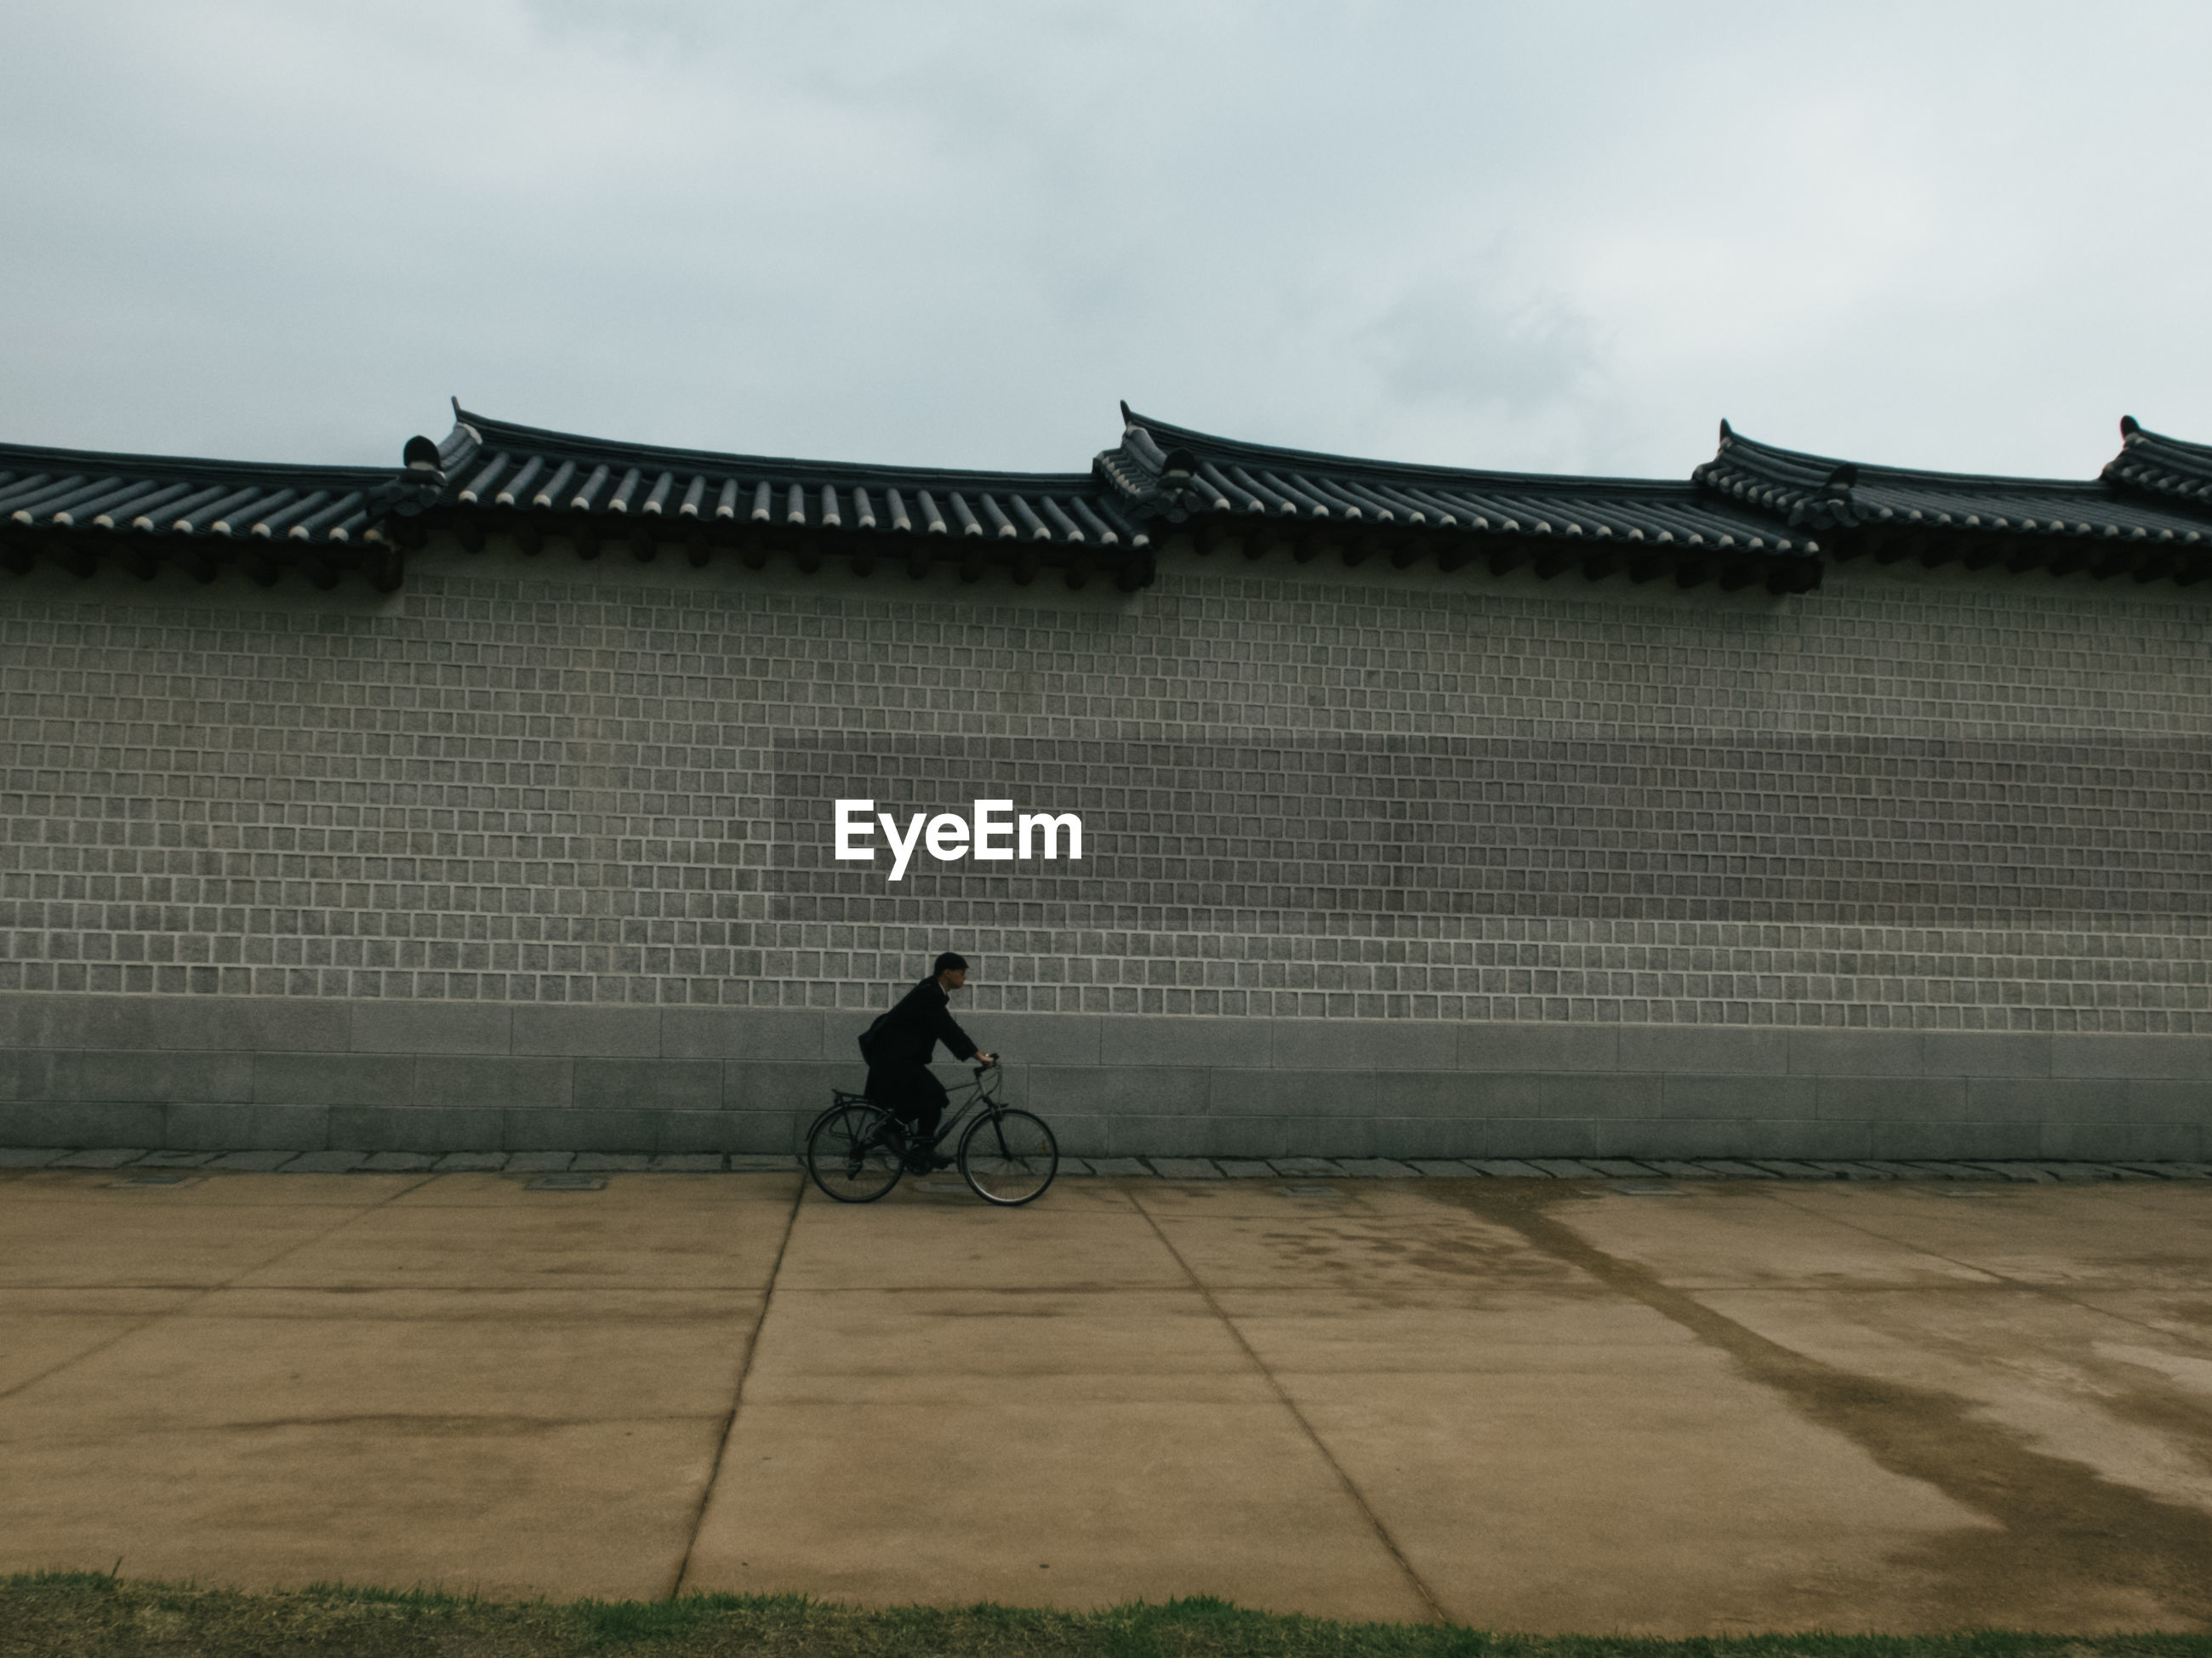 MAN CYCLING ON BICYCLE AGAINST BUILDING